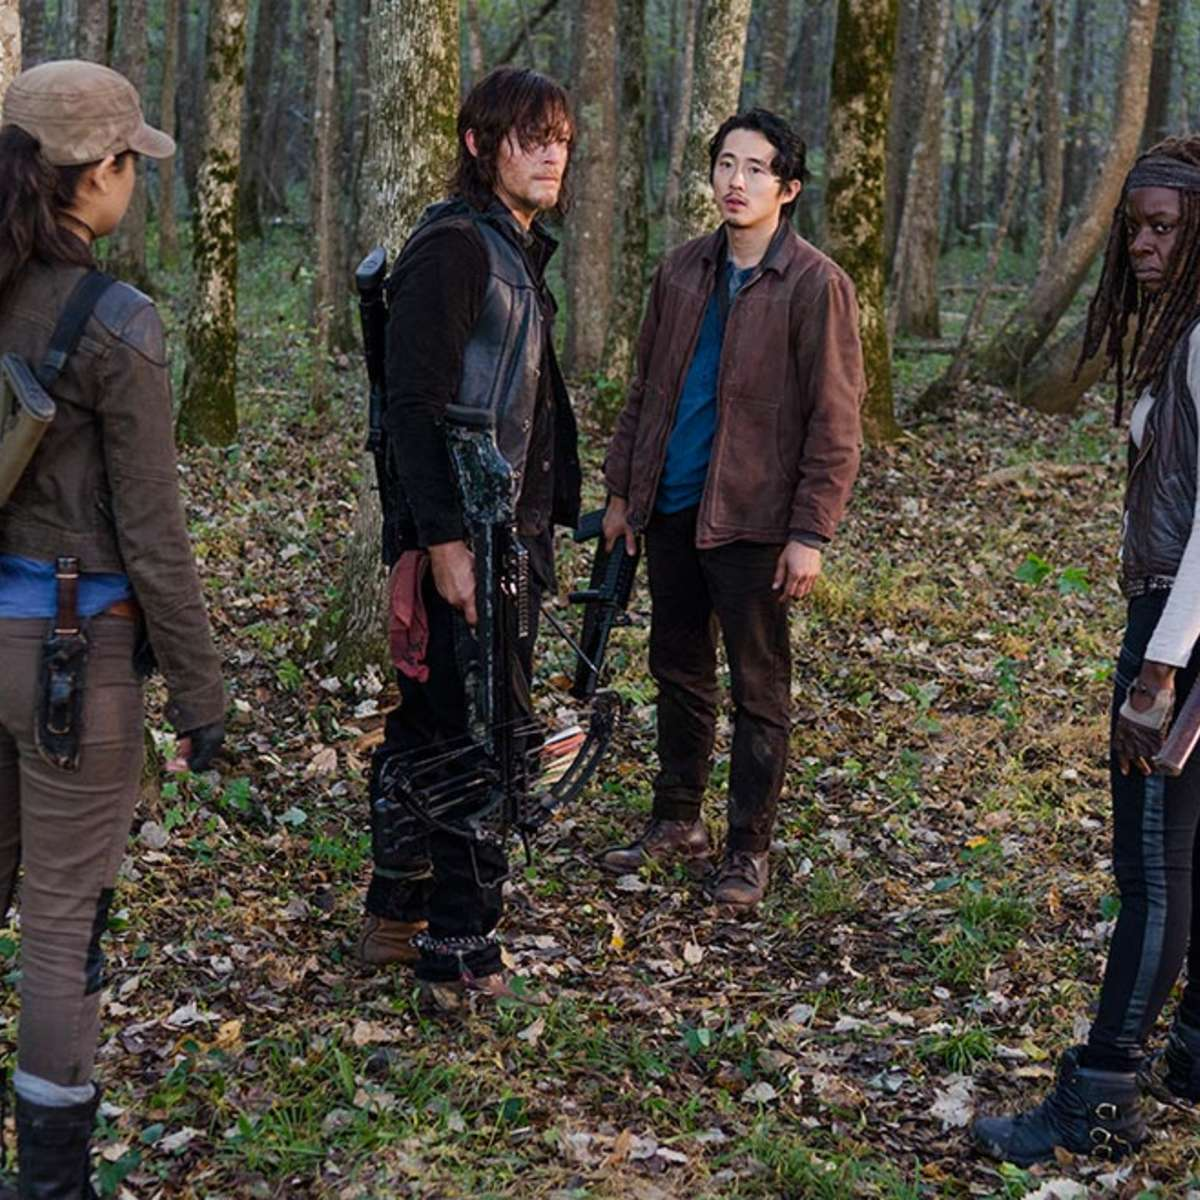 the-walking-dead-episode-615-daryl-reedus-2-935.jpg